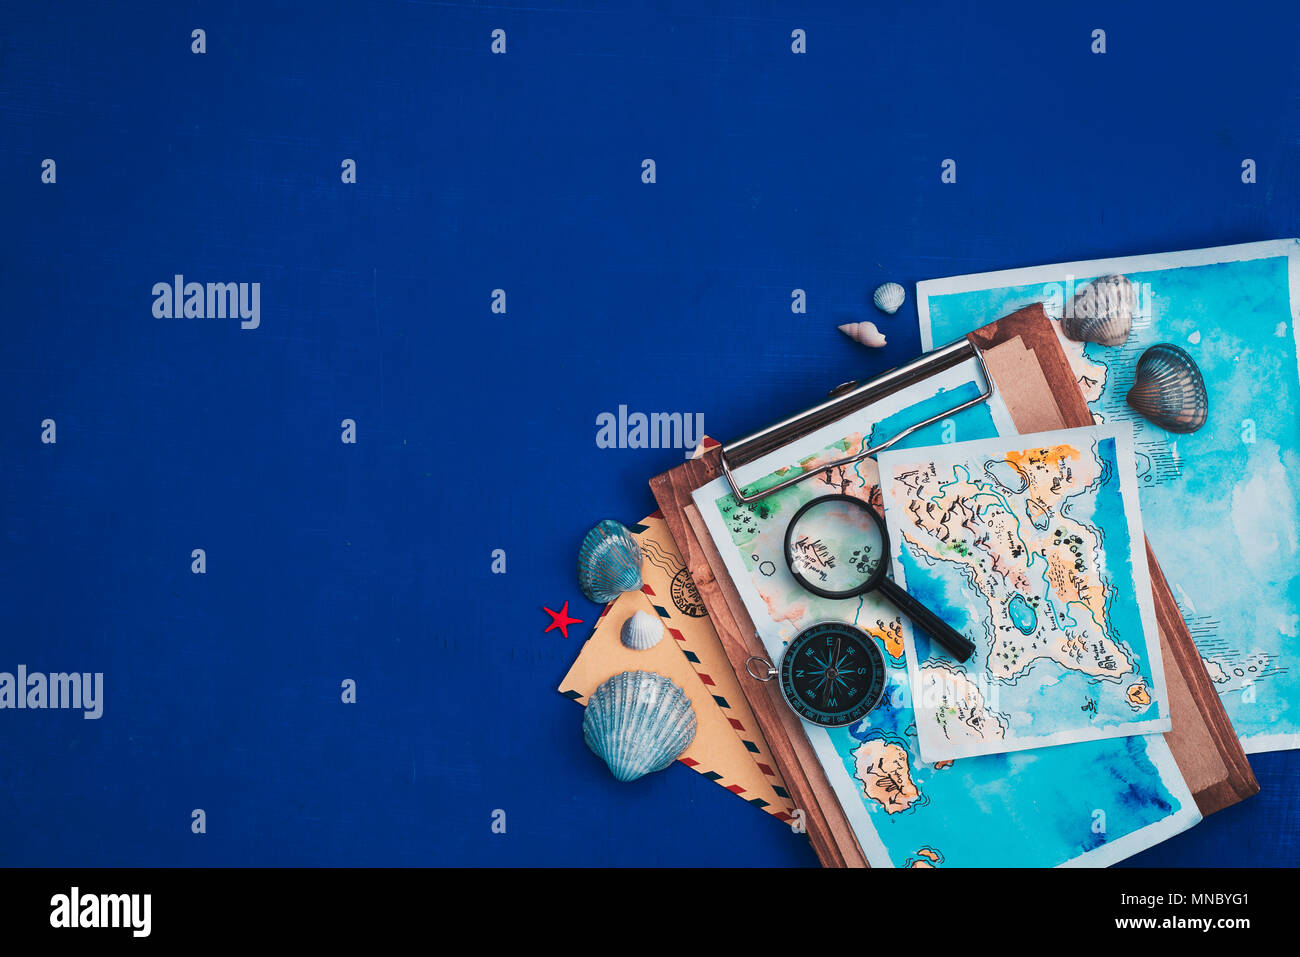 Sea travel and exploration concept. Watercolor maps on a wooden clipboard, compass and magnifying glass flat lay on a navy blue background with copy s - Stock Image